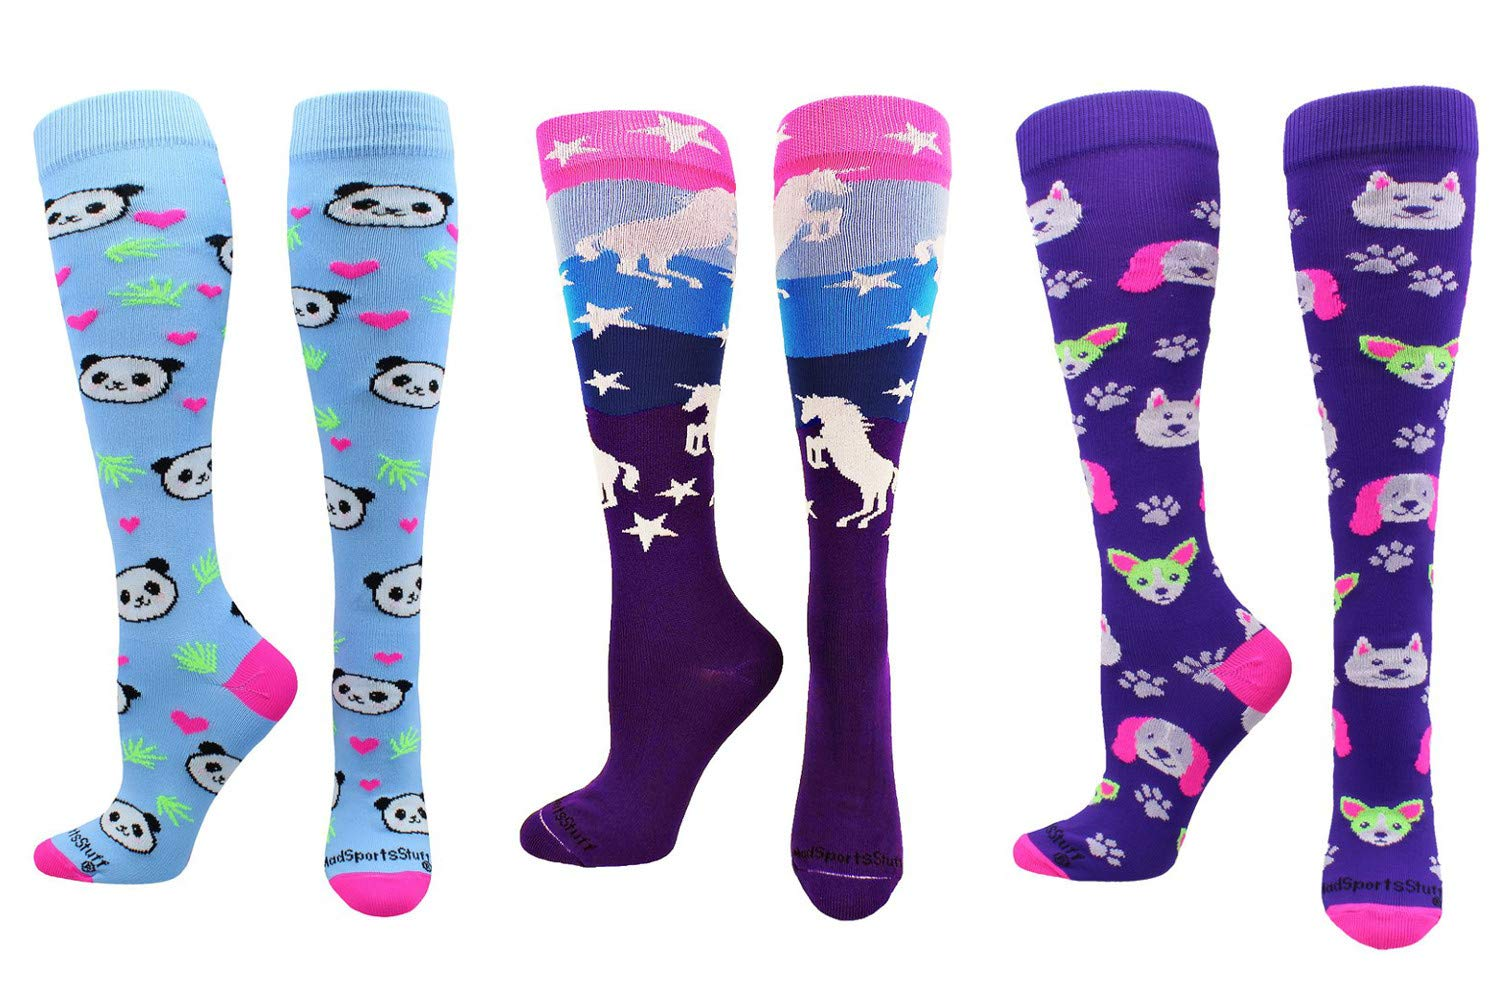 MadSportsStuff Neon Puppy Dogs Over The Calf Athletic Socks